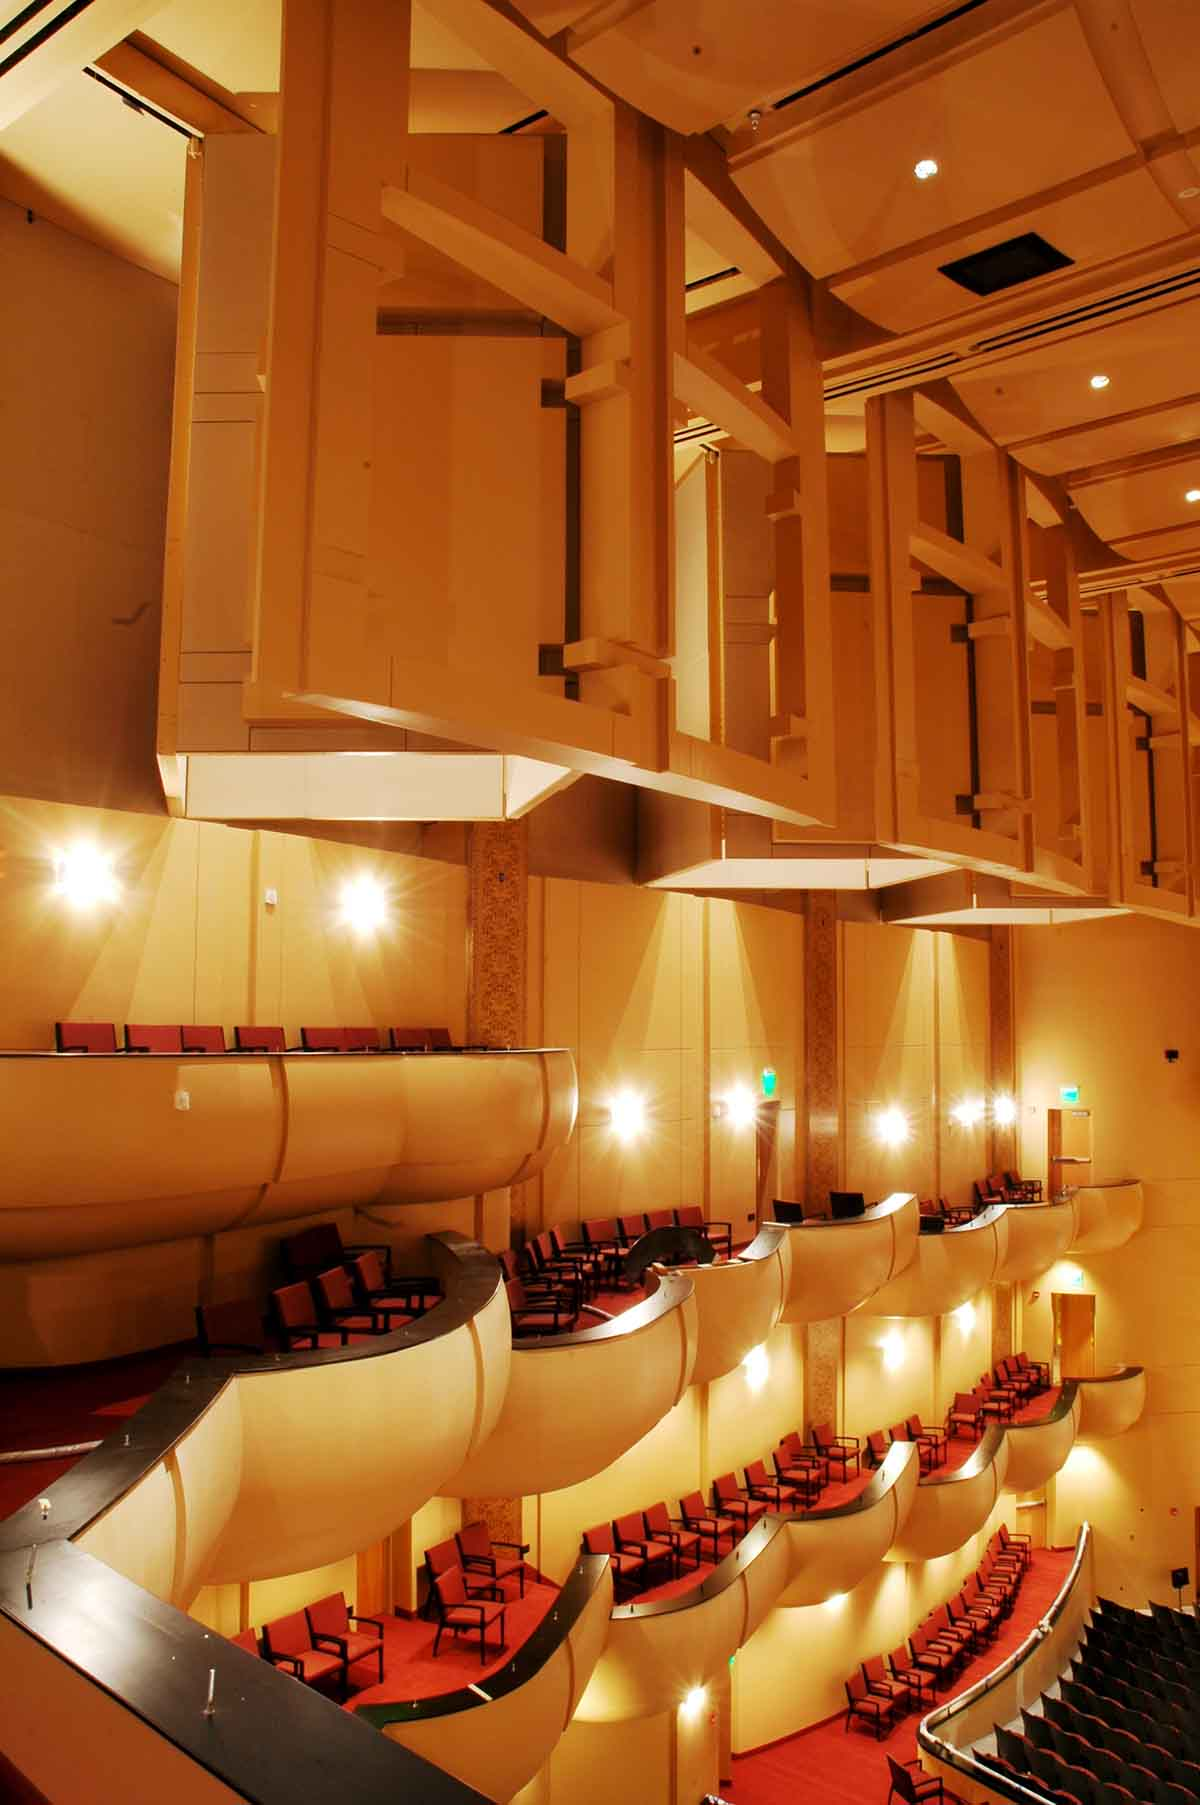 stephens performing arts center, pocatello, idaho, slichter ugrin architecture